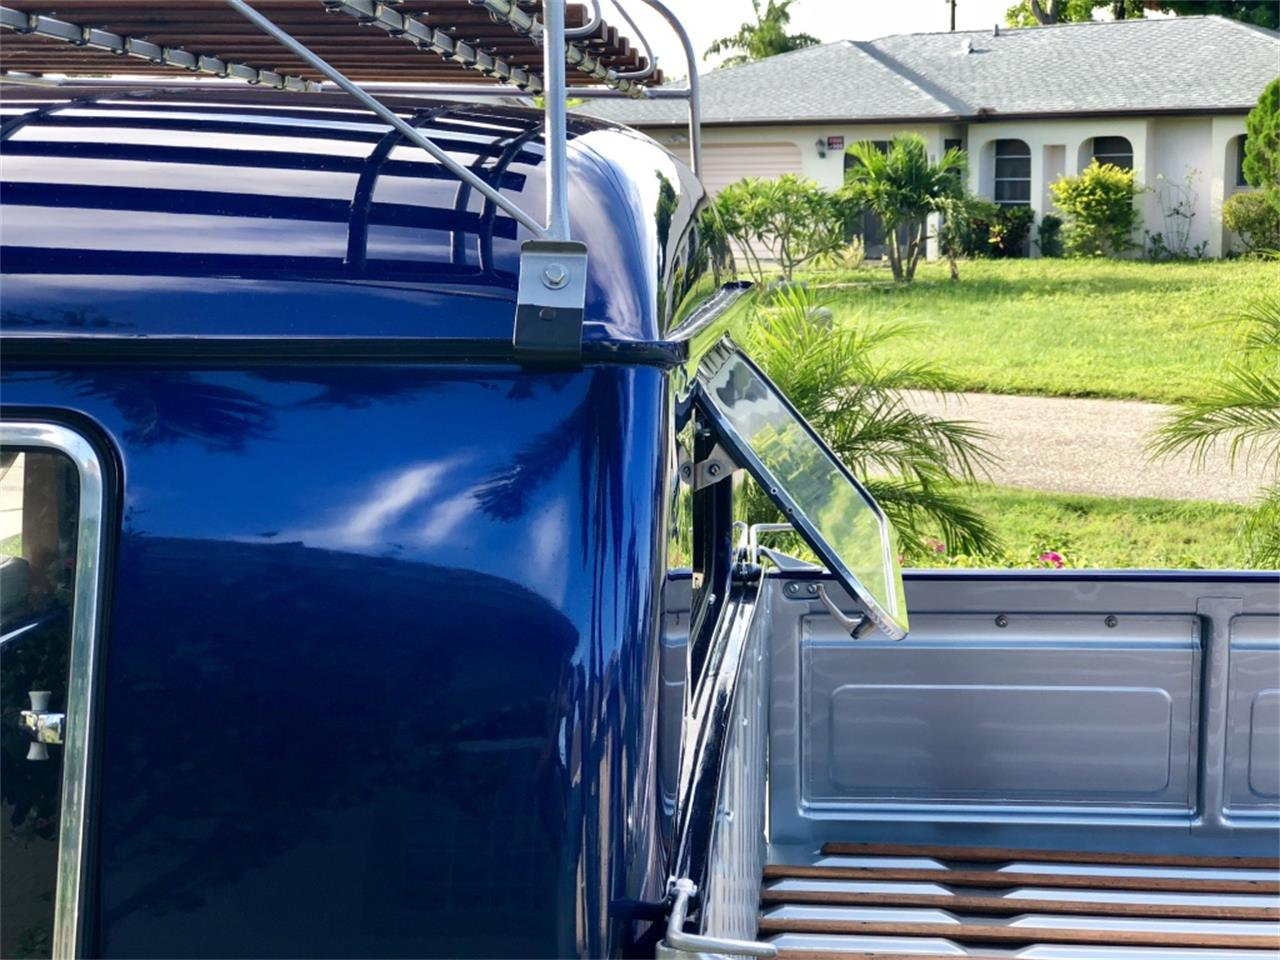 Large Picture of 1963 Volkswagen Double Cab located in Ormond Beach Florida Offered by a Private Seller - PJFH